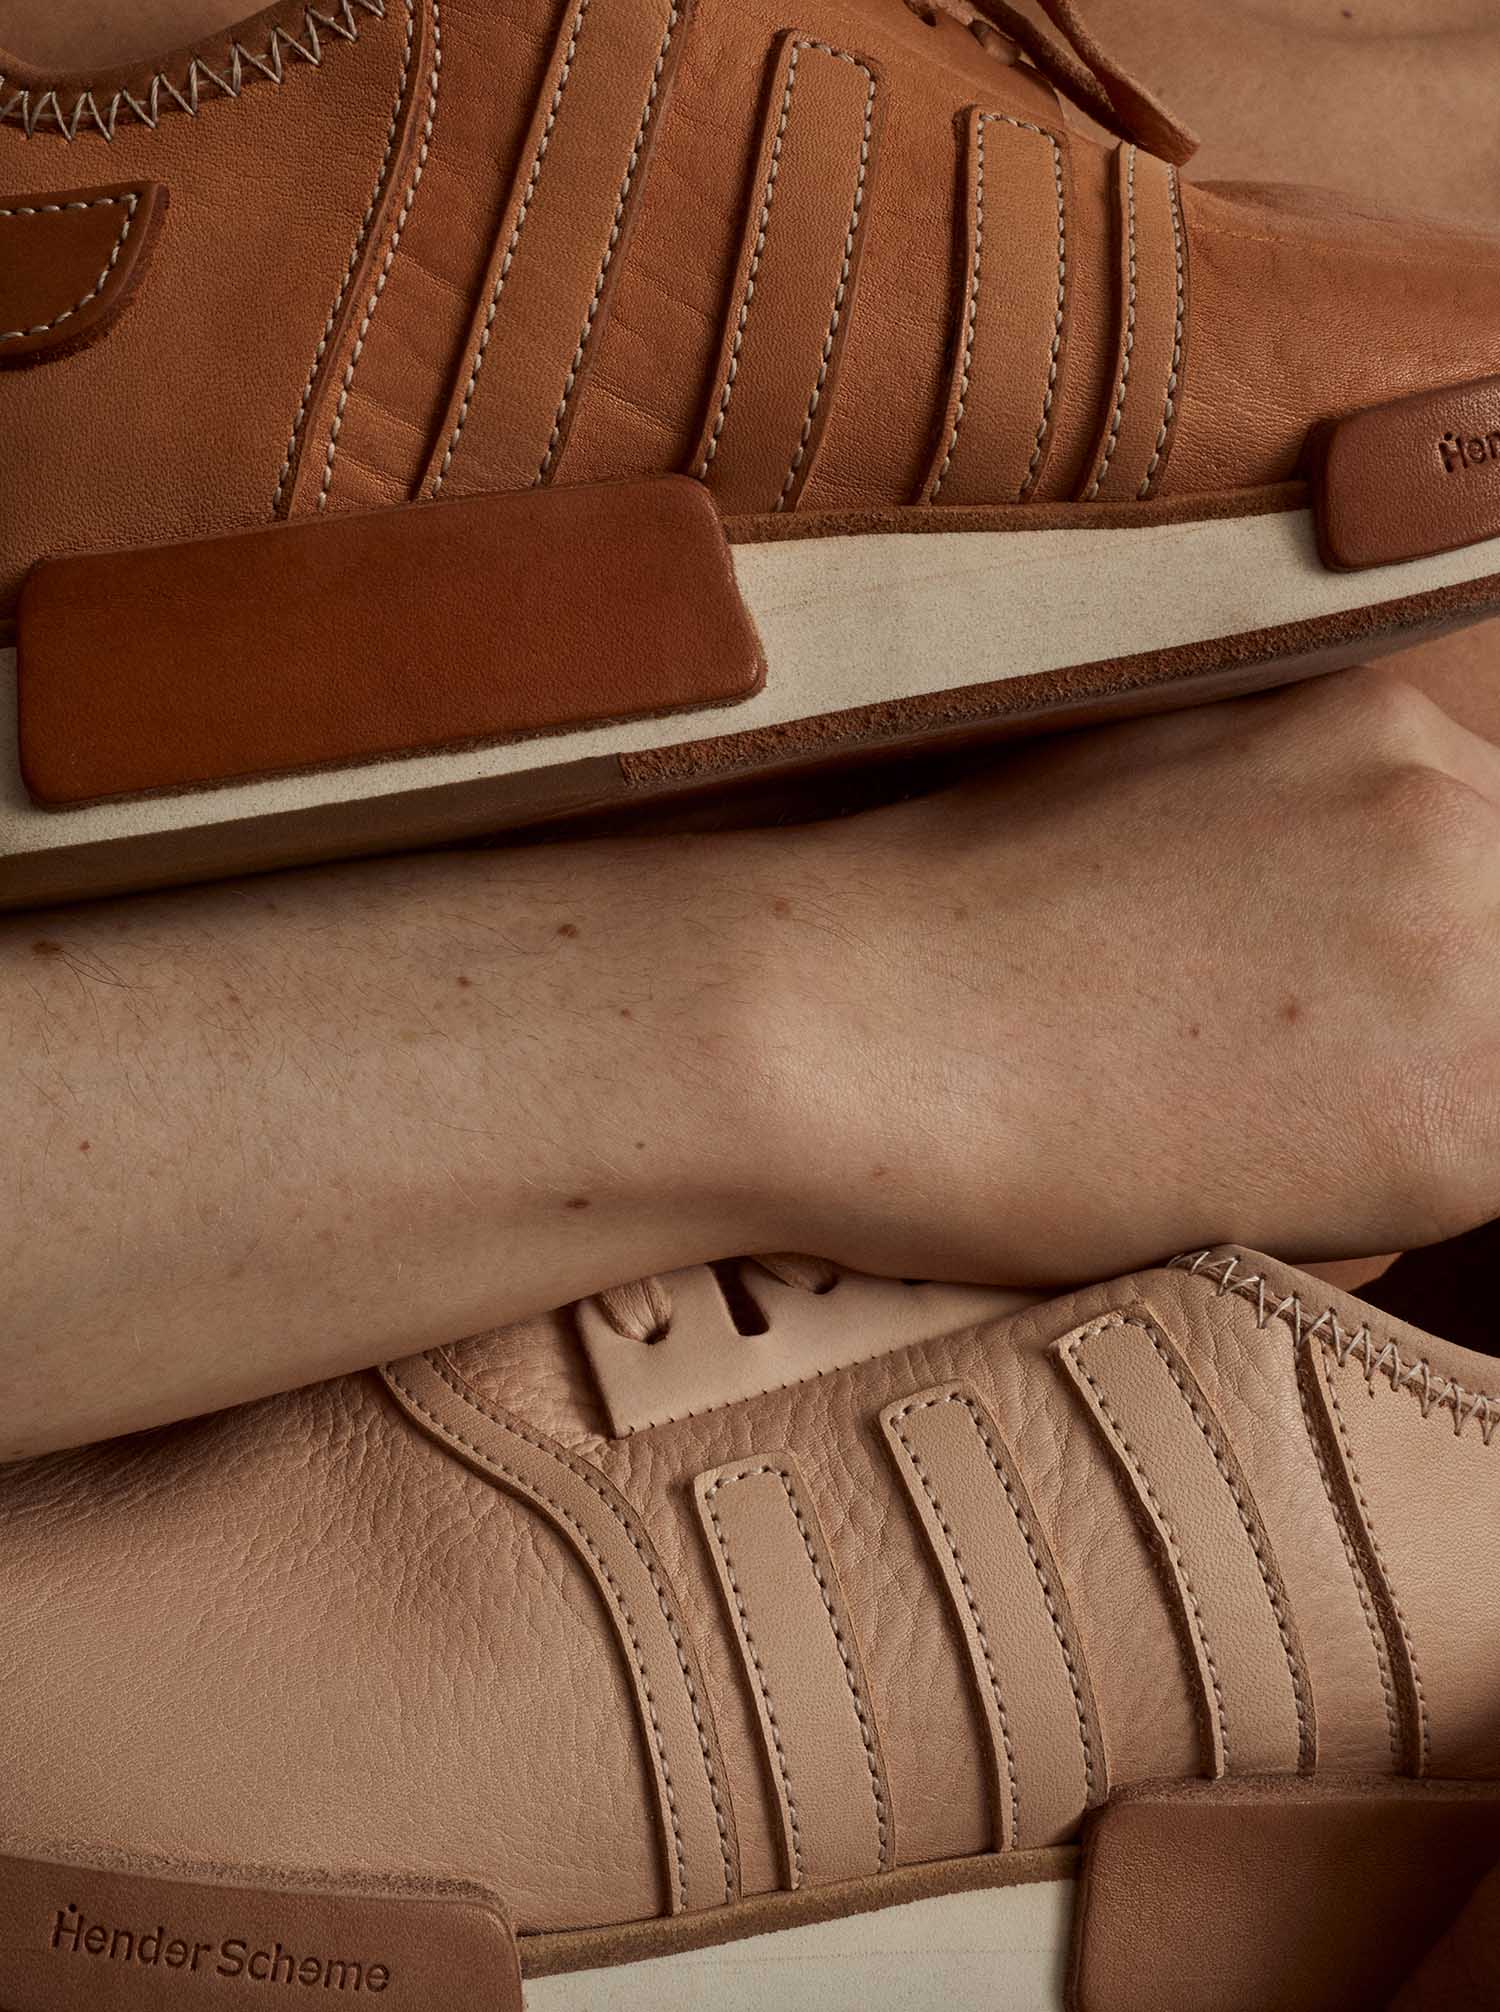 iGNANT_Fashion_Adidas_Originals_Hender_Scheme_11